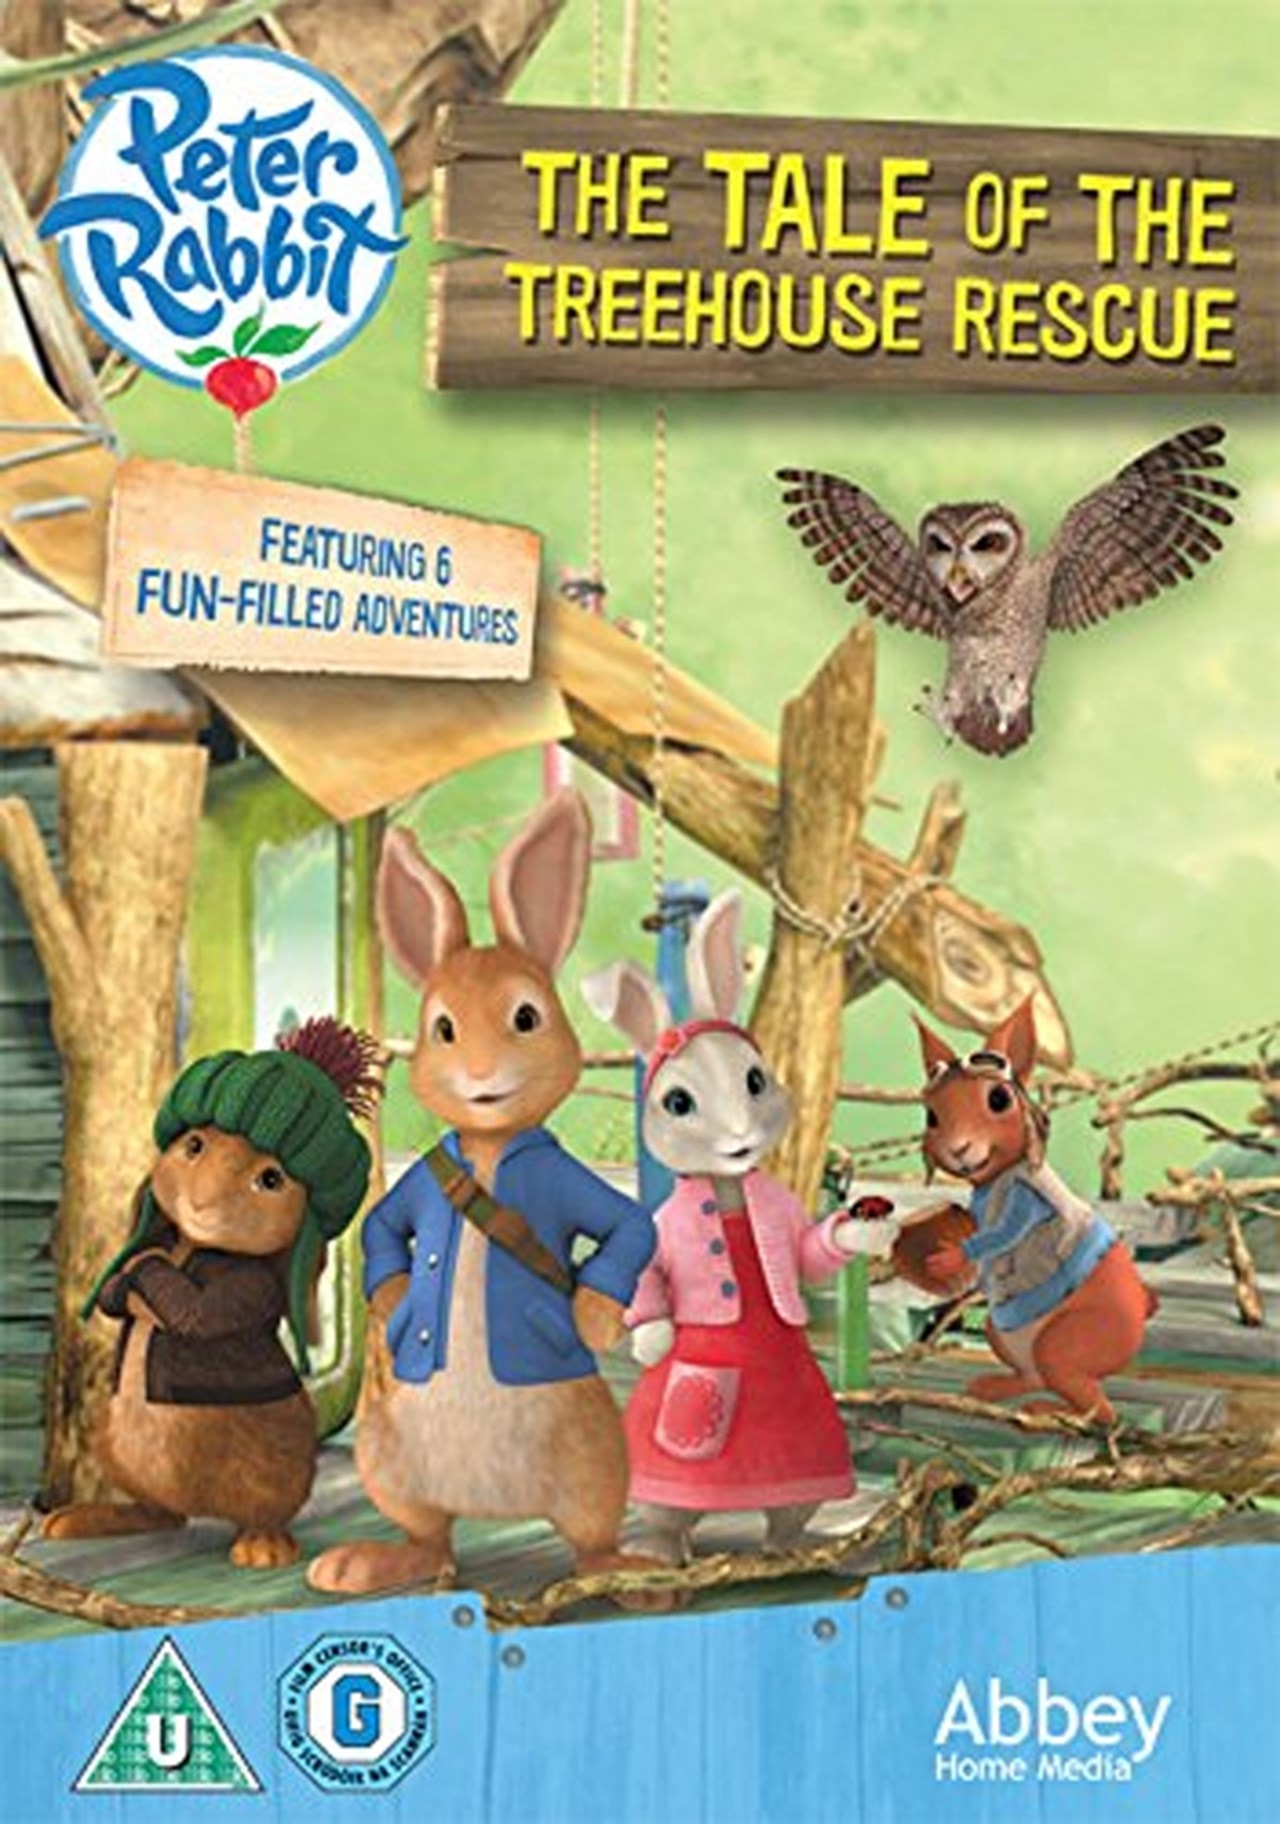 Peter Rabbit: The Tale of the Treehouse Rescue - 1